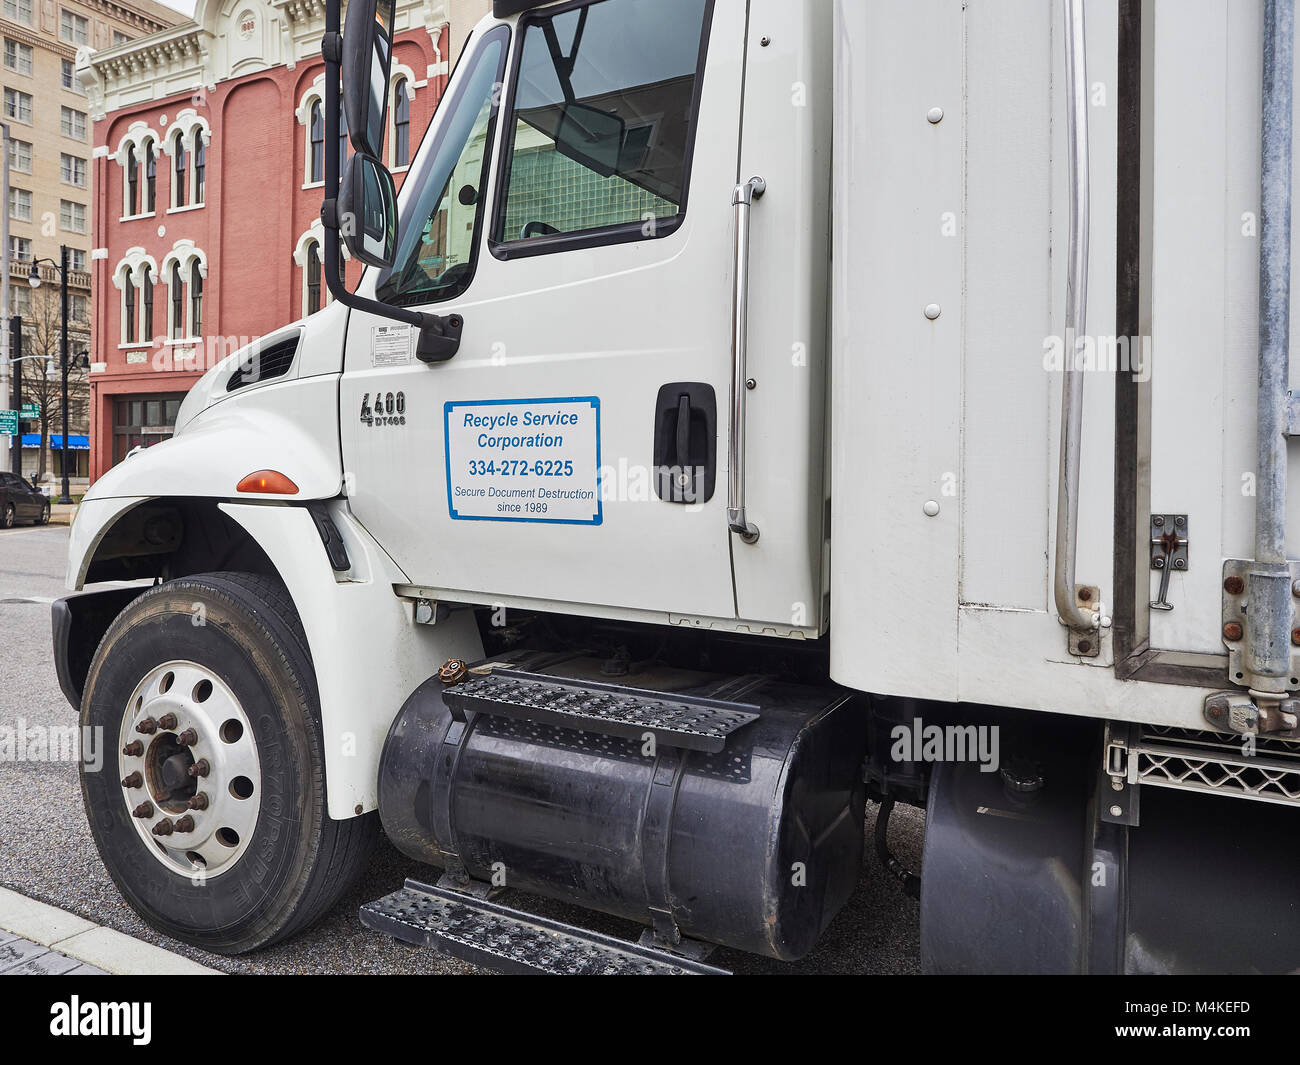 Parked mobile commercial document shredding truck for secure document destruction as a recycle service to businesses - Stock Image